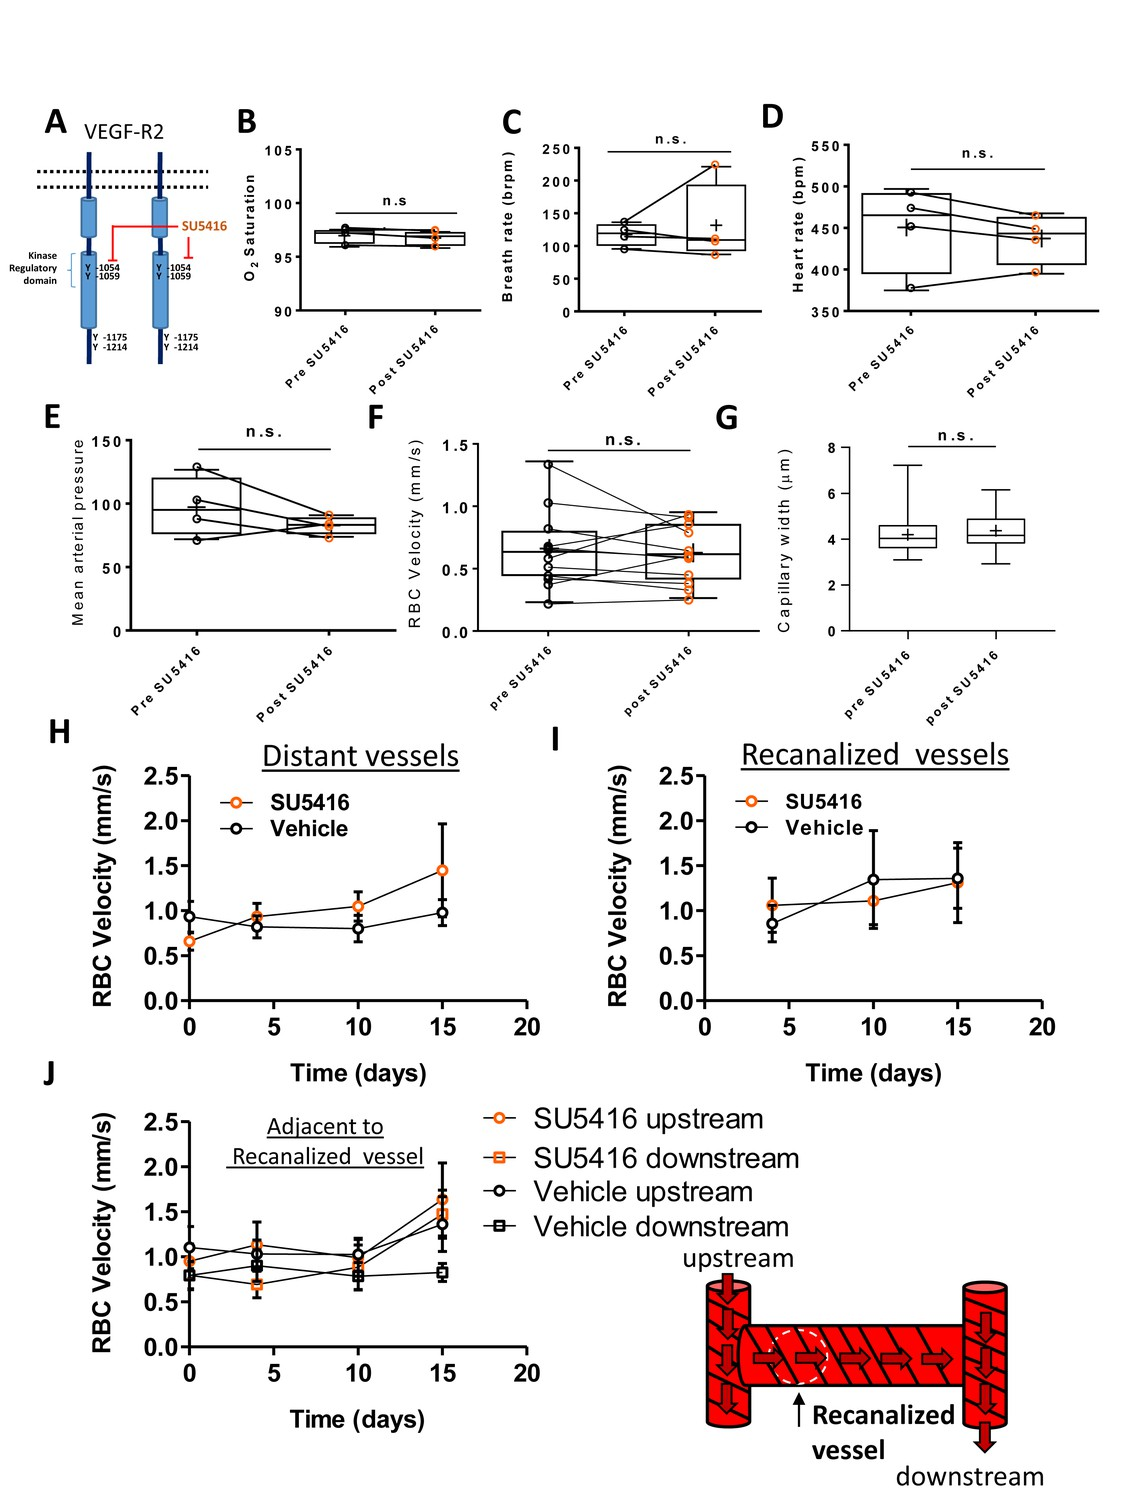 VEGF signaling regulates the fate of obstructed capillaries